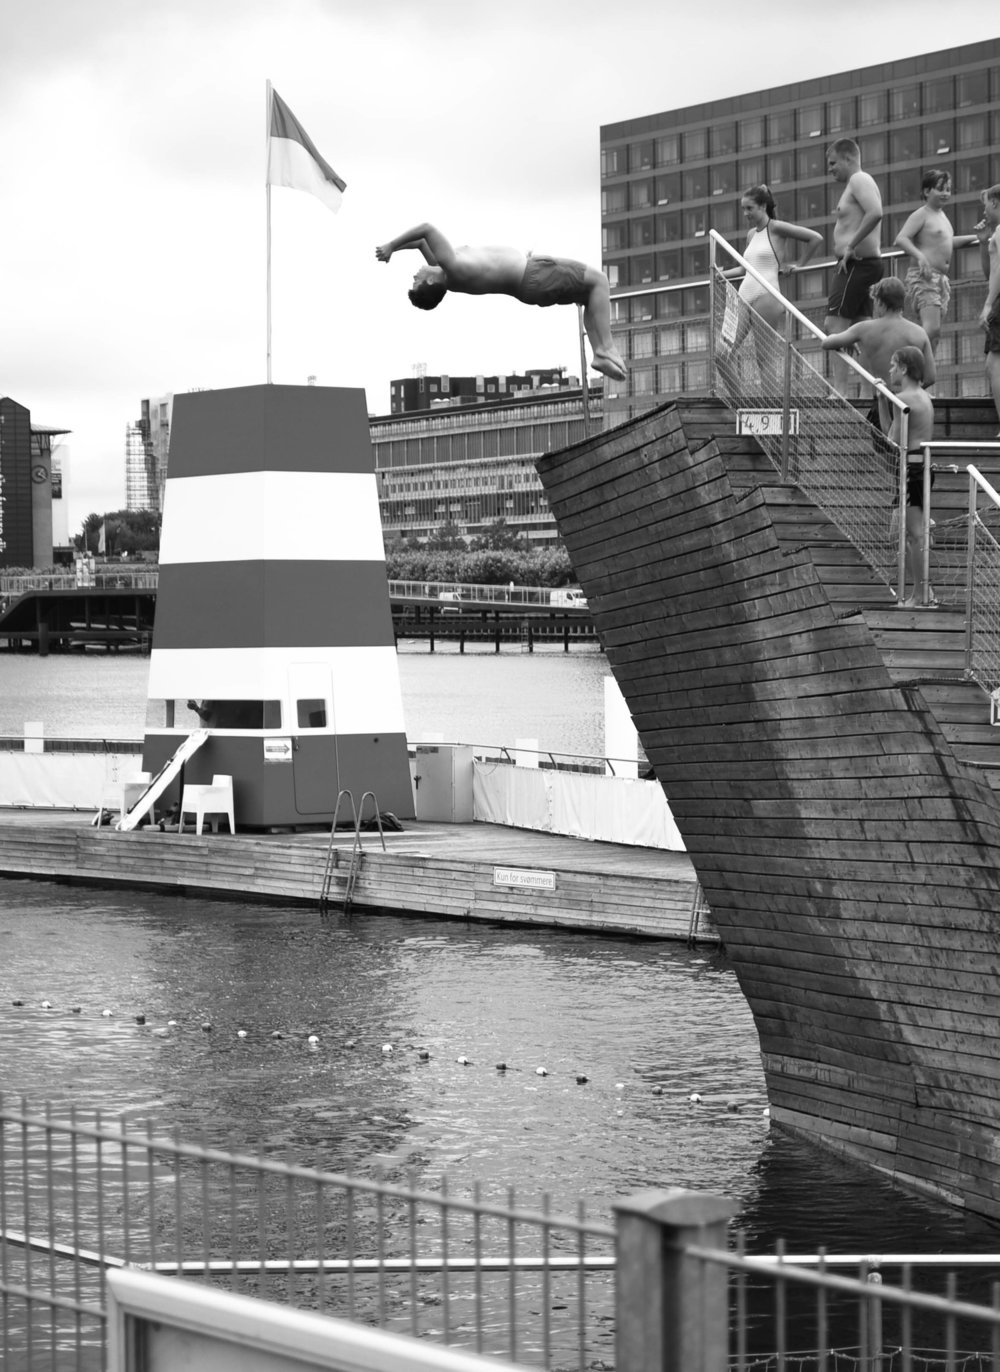 Doing backflips into harbour pools in most cities will cause some nasty guard to yell and scream. In Copenhagen's Island Brygee, people are respected enough to not be babysat by authority.